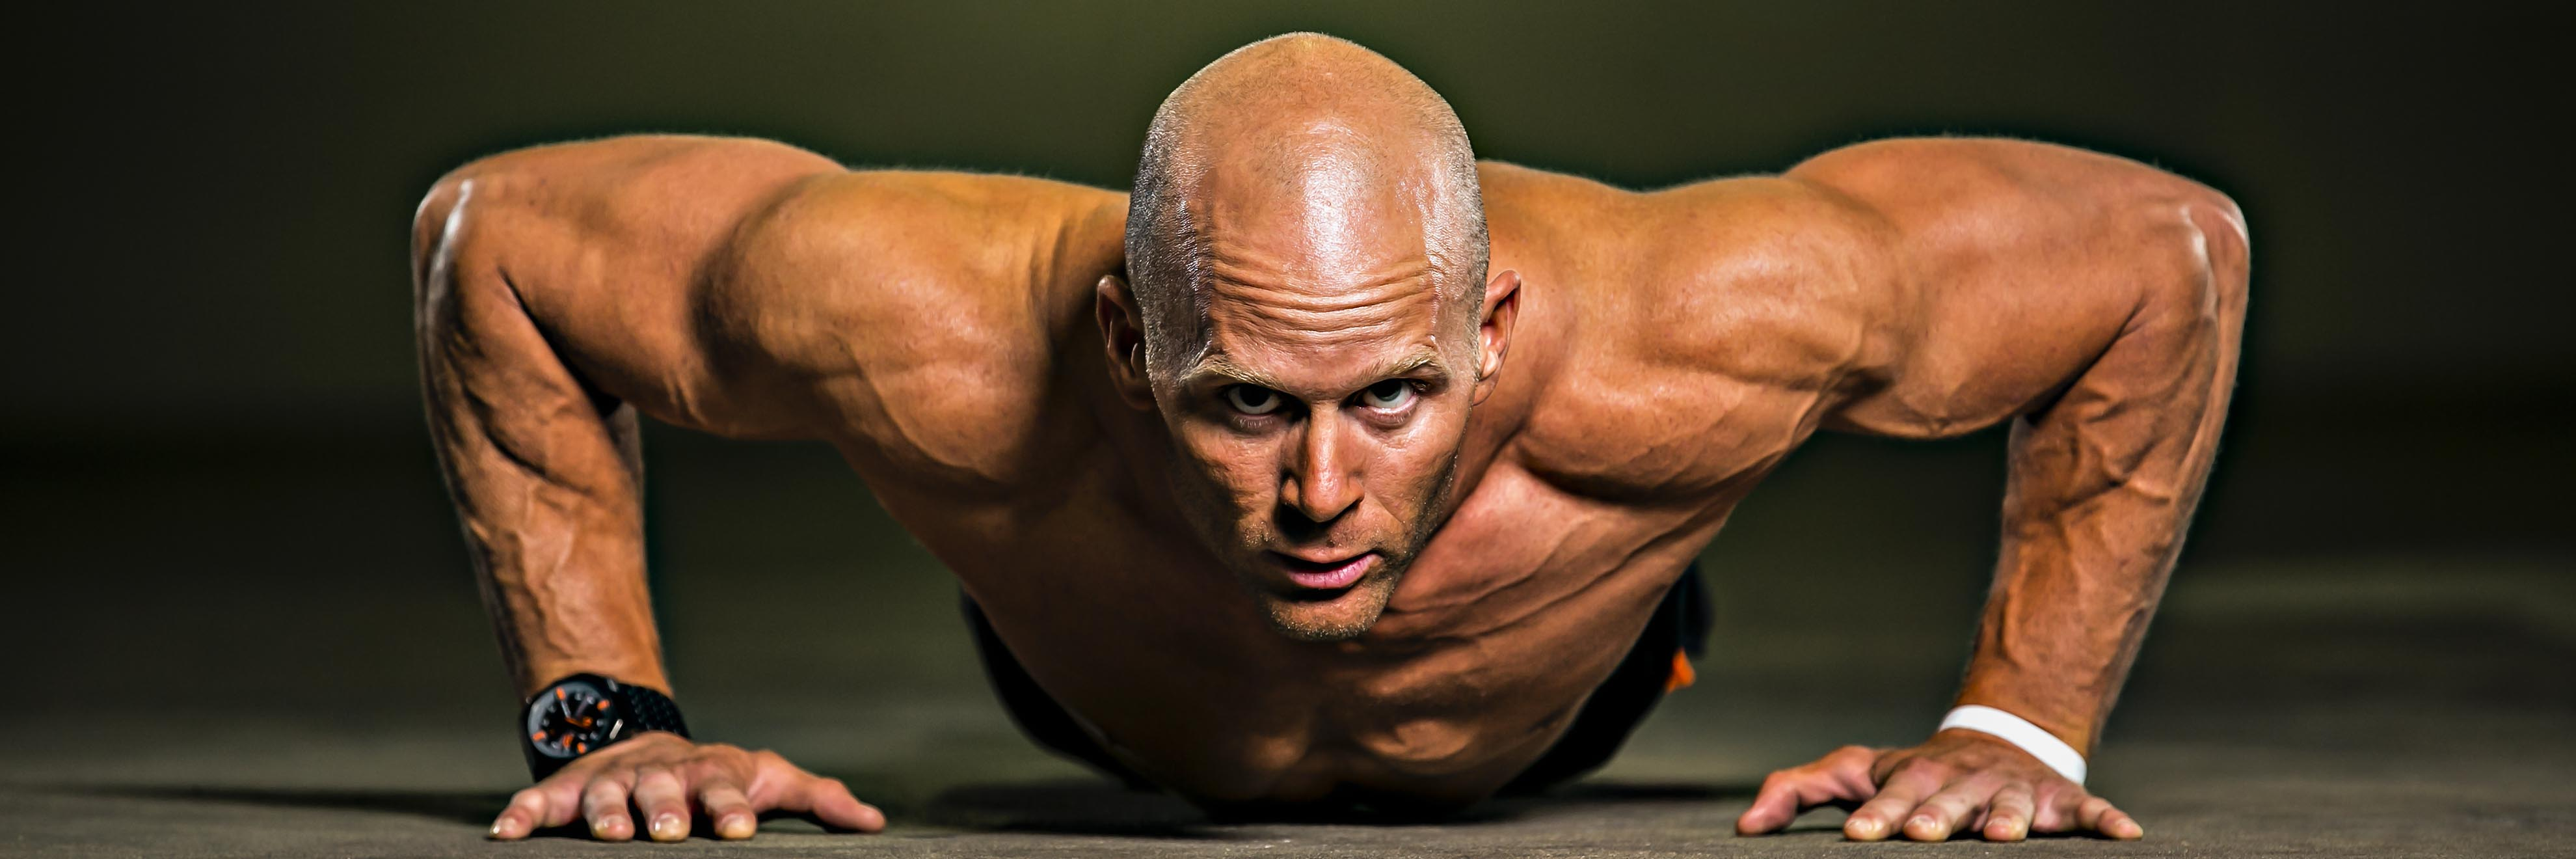 Body Builder Fitness Photography